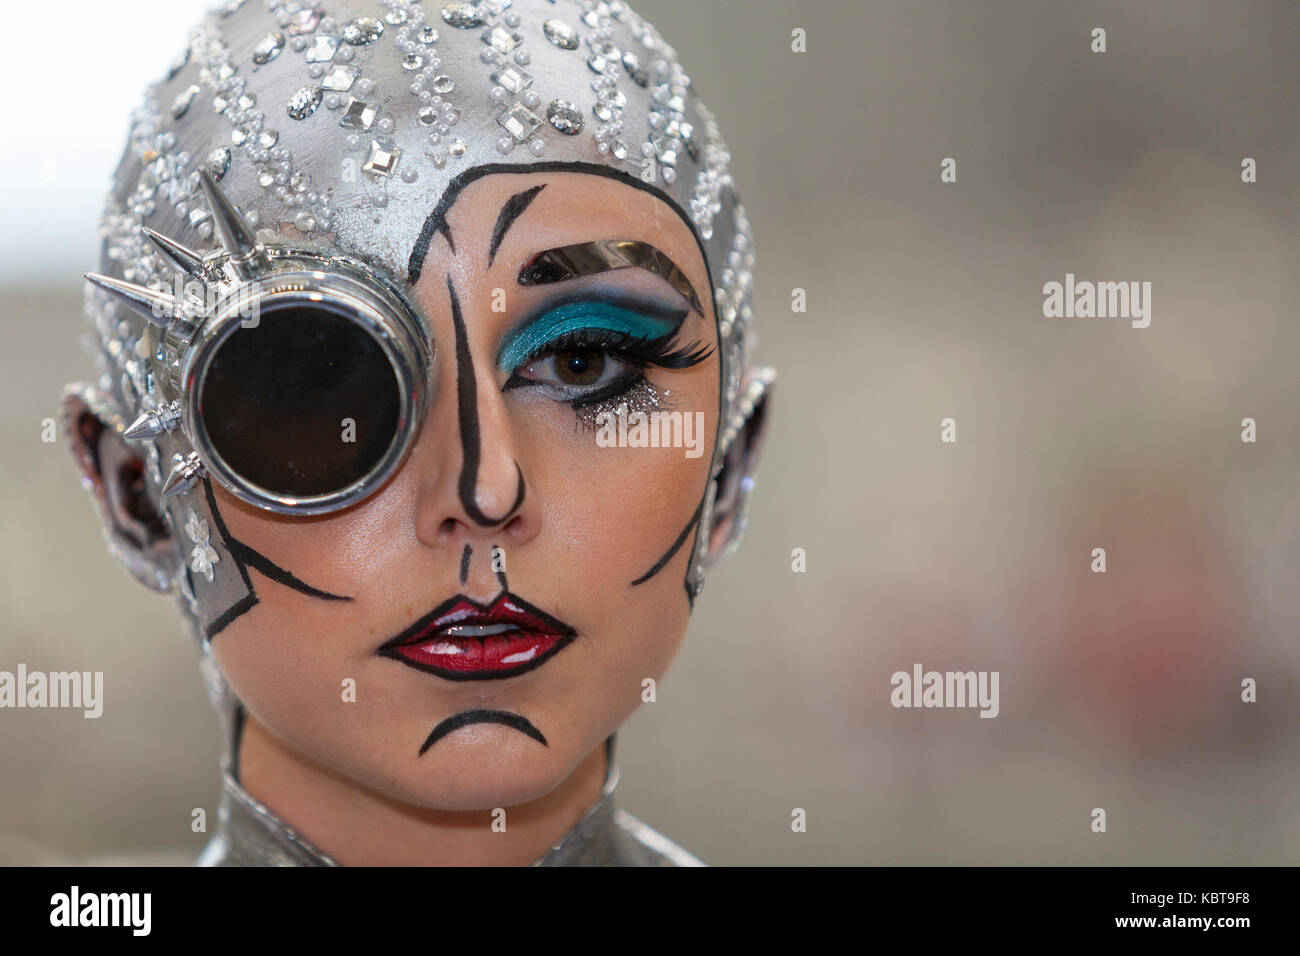 Olympia Beauty Show: 1 October, 2017 London UK:  Contestants from the Make-Up and Body-Painting competitions.  Credit: - Stock Image